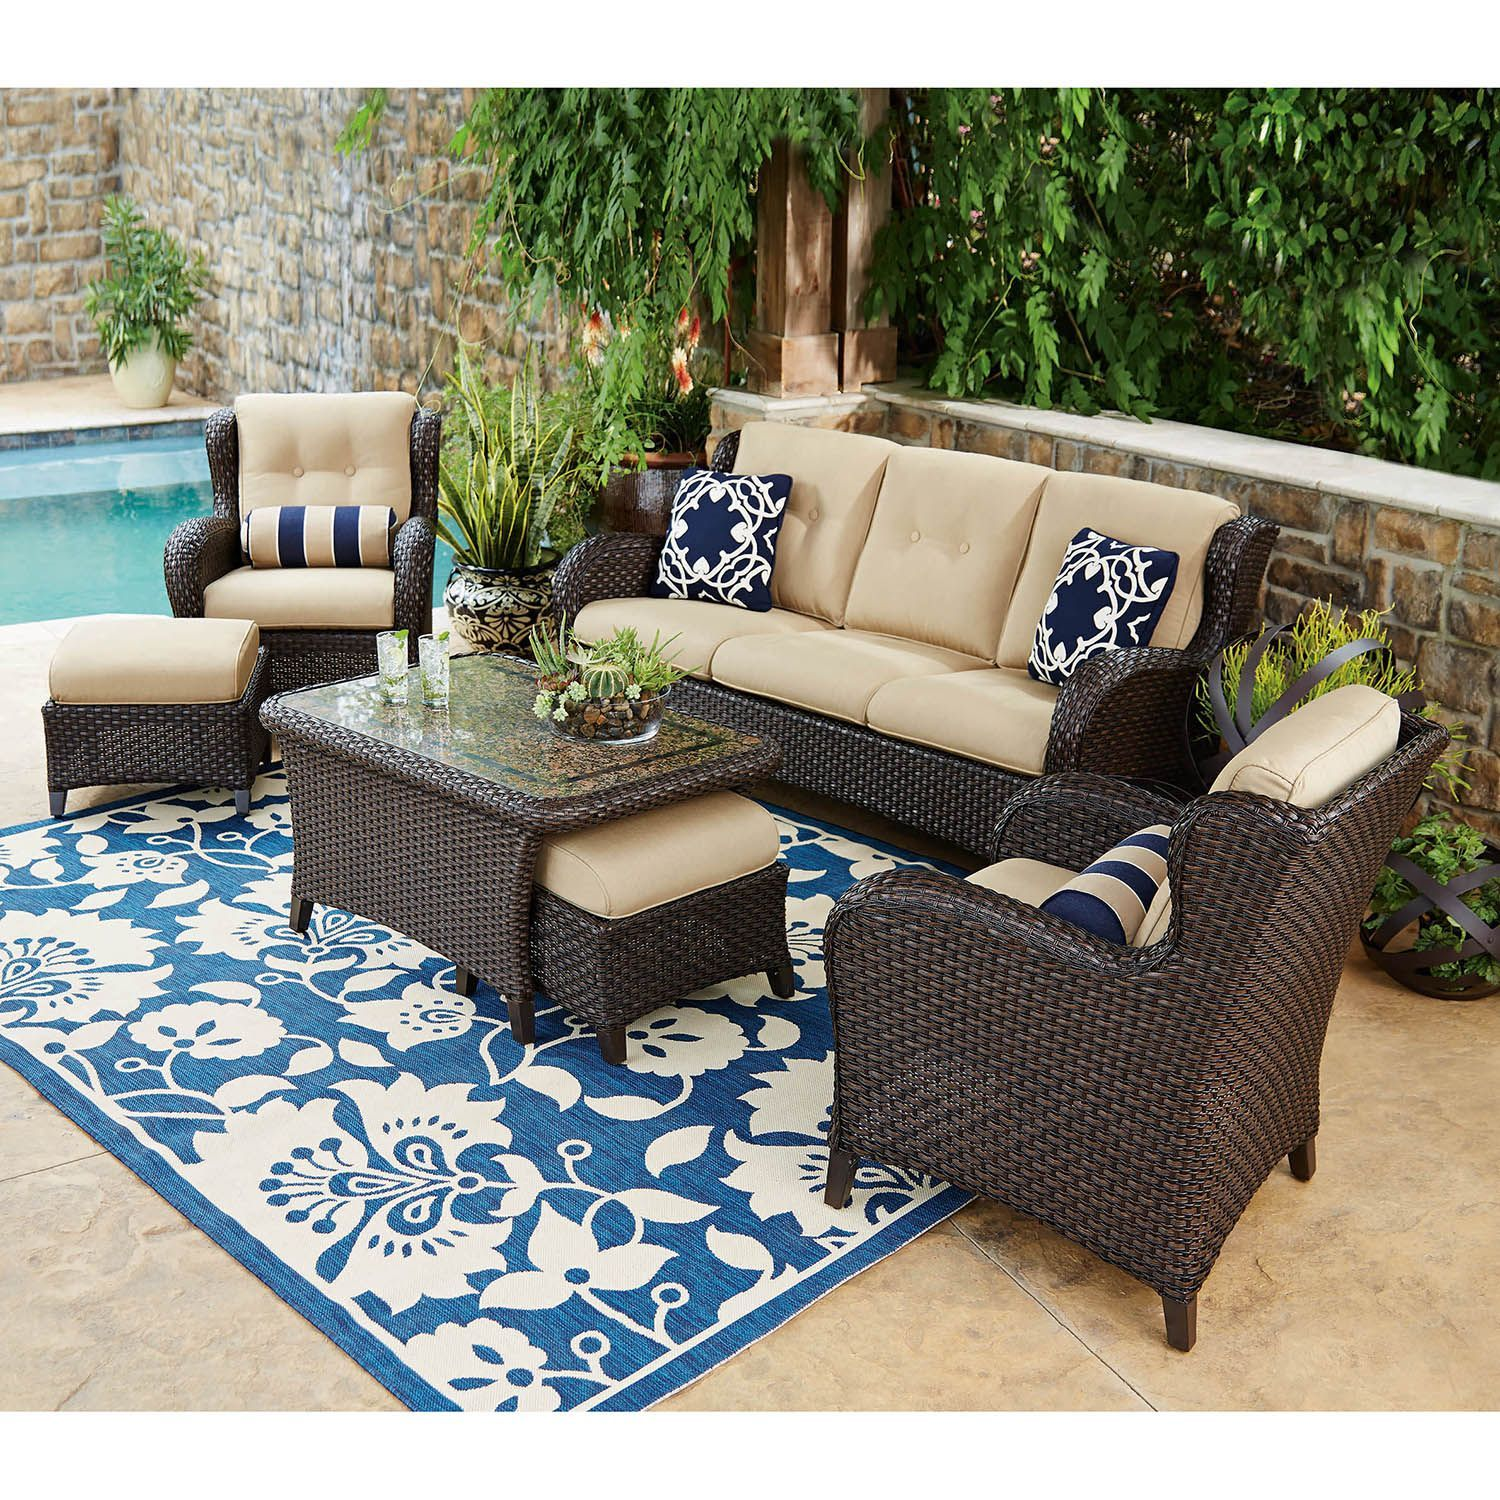 Member's Mark Heritage Deep Seating Set - Sam's Club - Member's Mark Heritage Deep Seating Set - Sam's Club Outdoor